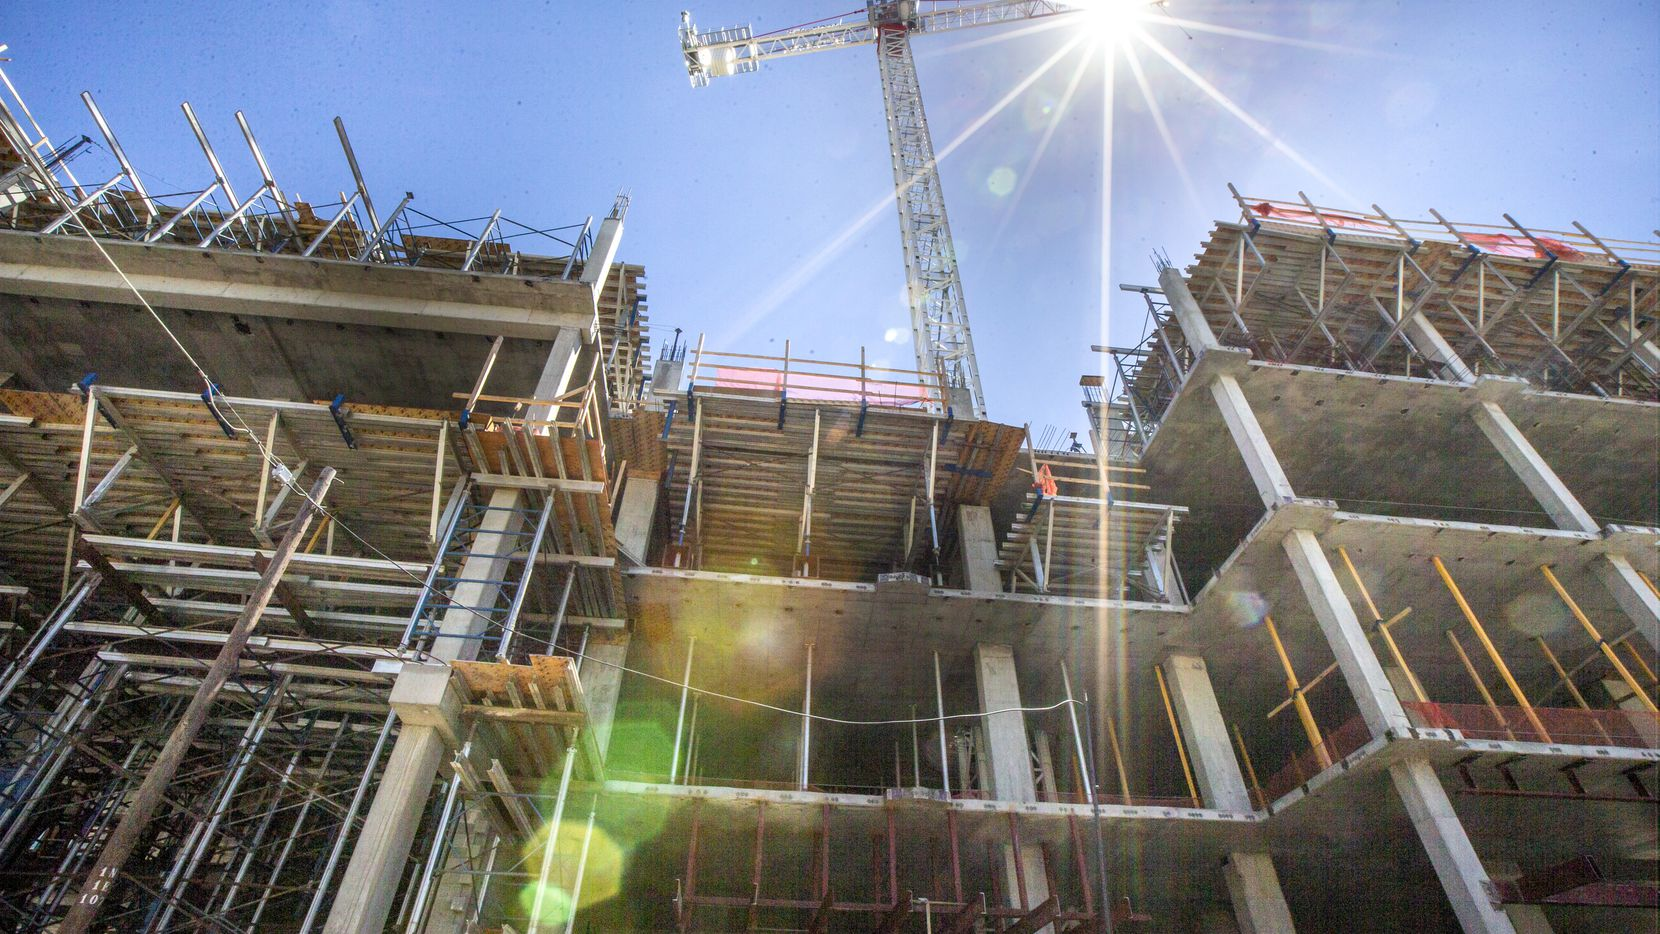 Almost 5 million square feet of office space is still under construction in North Texas.